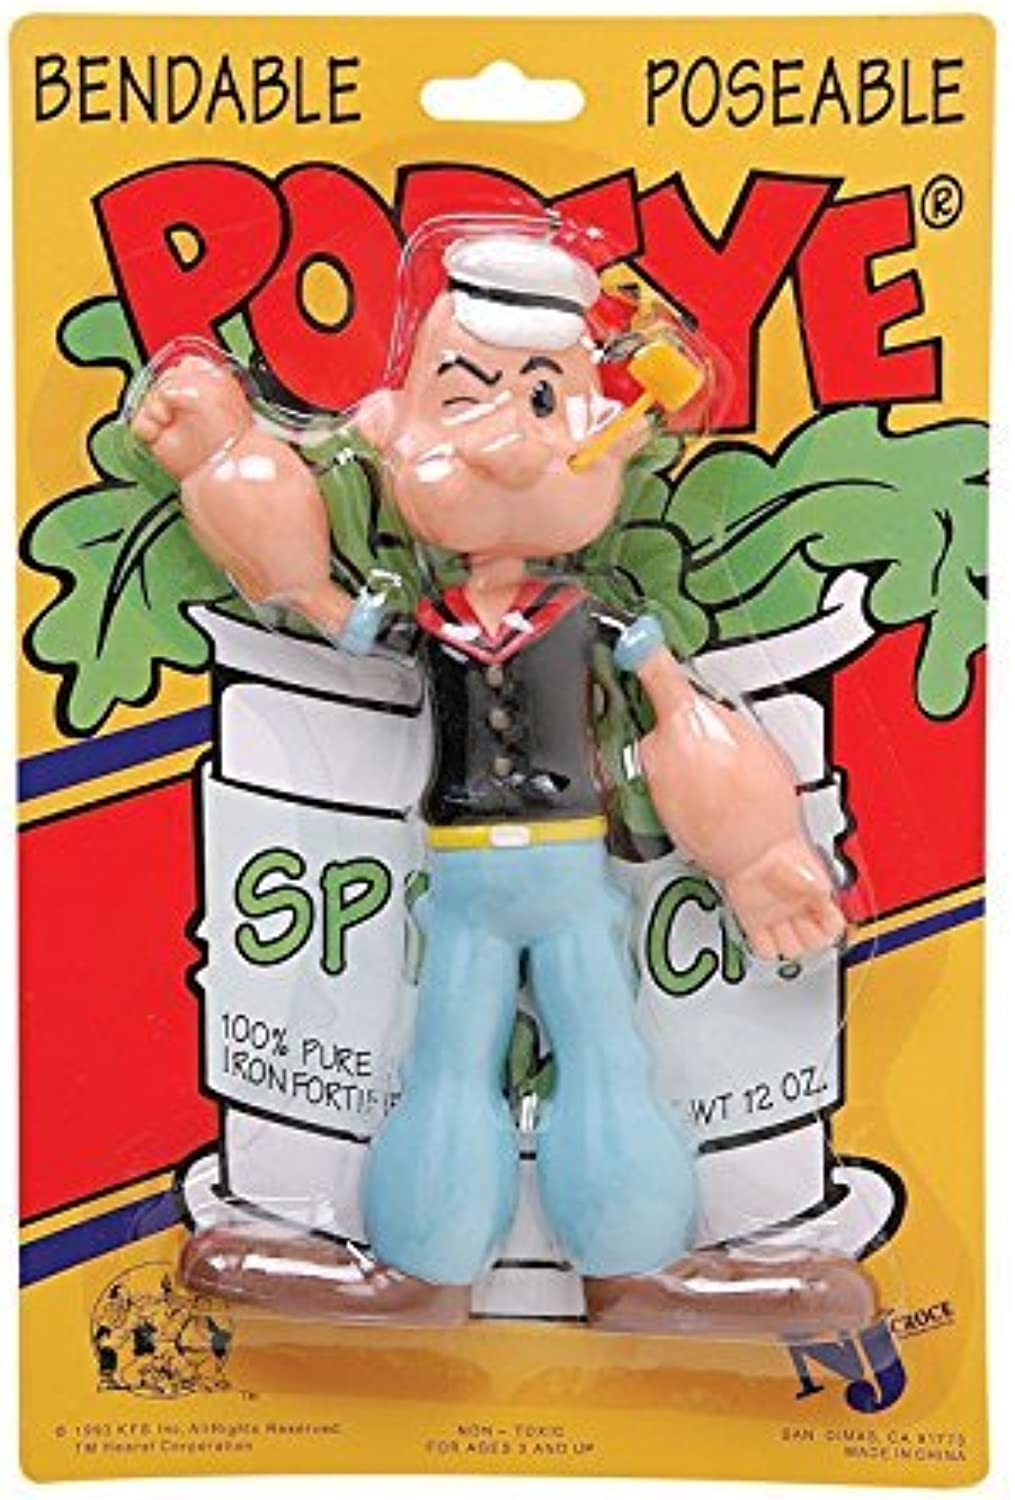 Popeye The Sailor Man, Bendable Poseable Figure by KFS Inc.